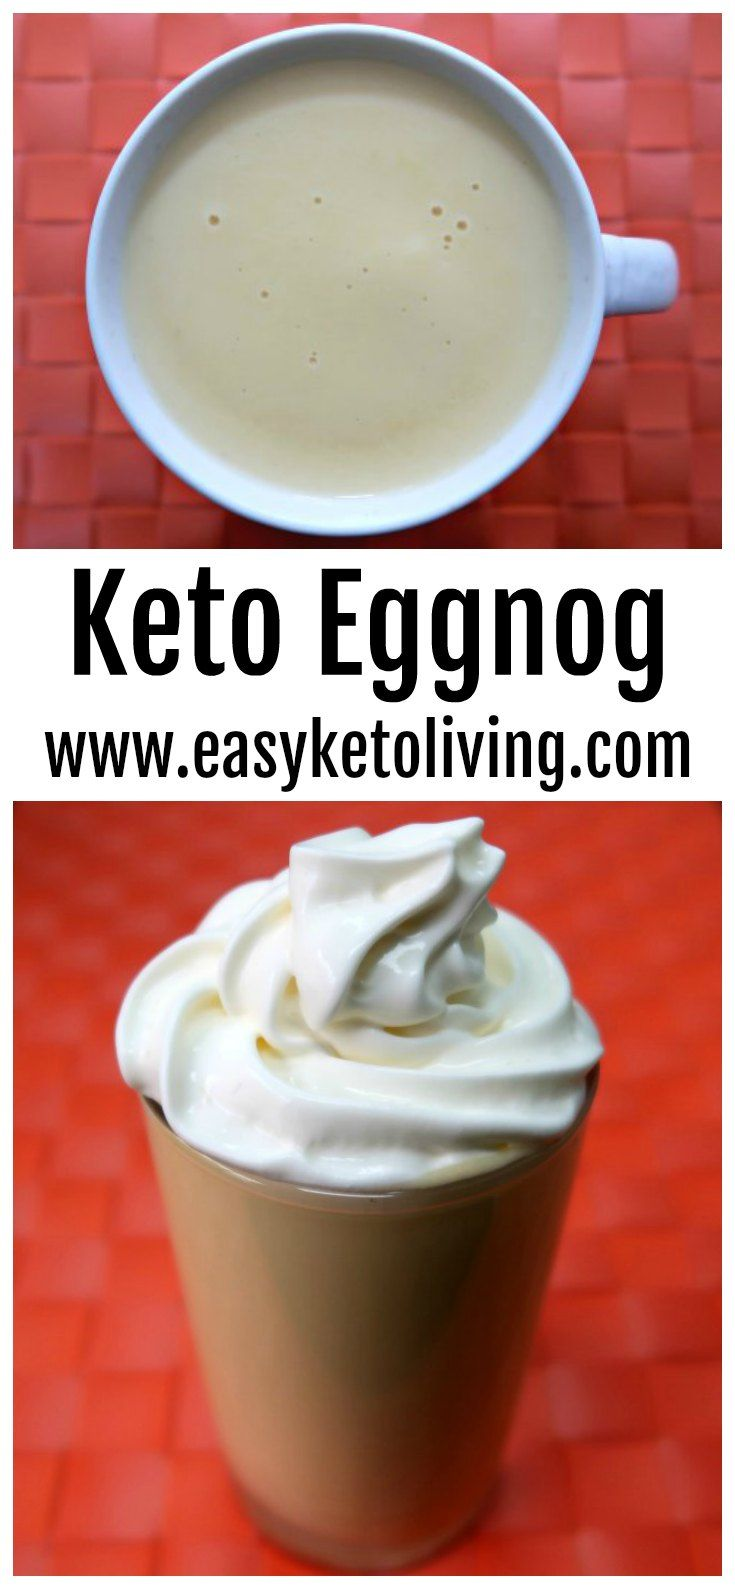 Low Carb Eggnog Recipe - Keto Egg Nog Dessert that's sugar free, creamy and delicious. #ketoeggnog